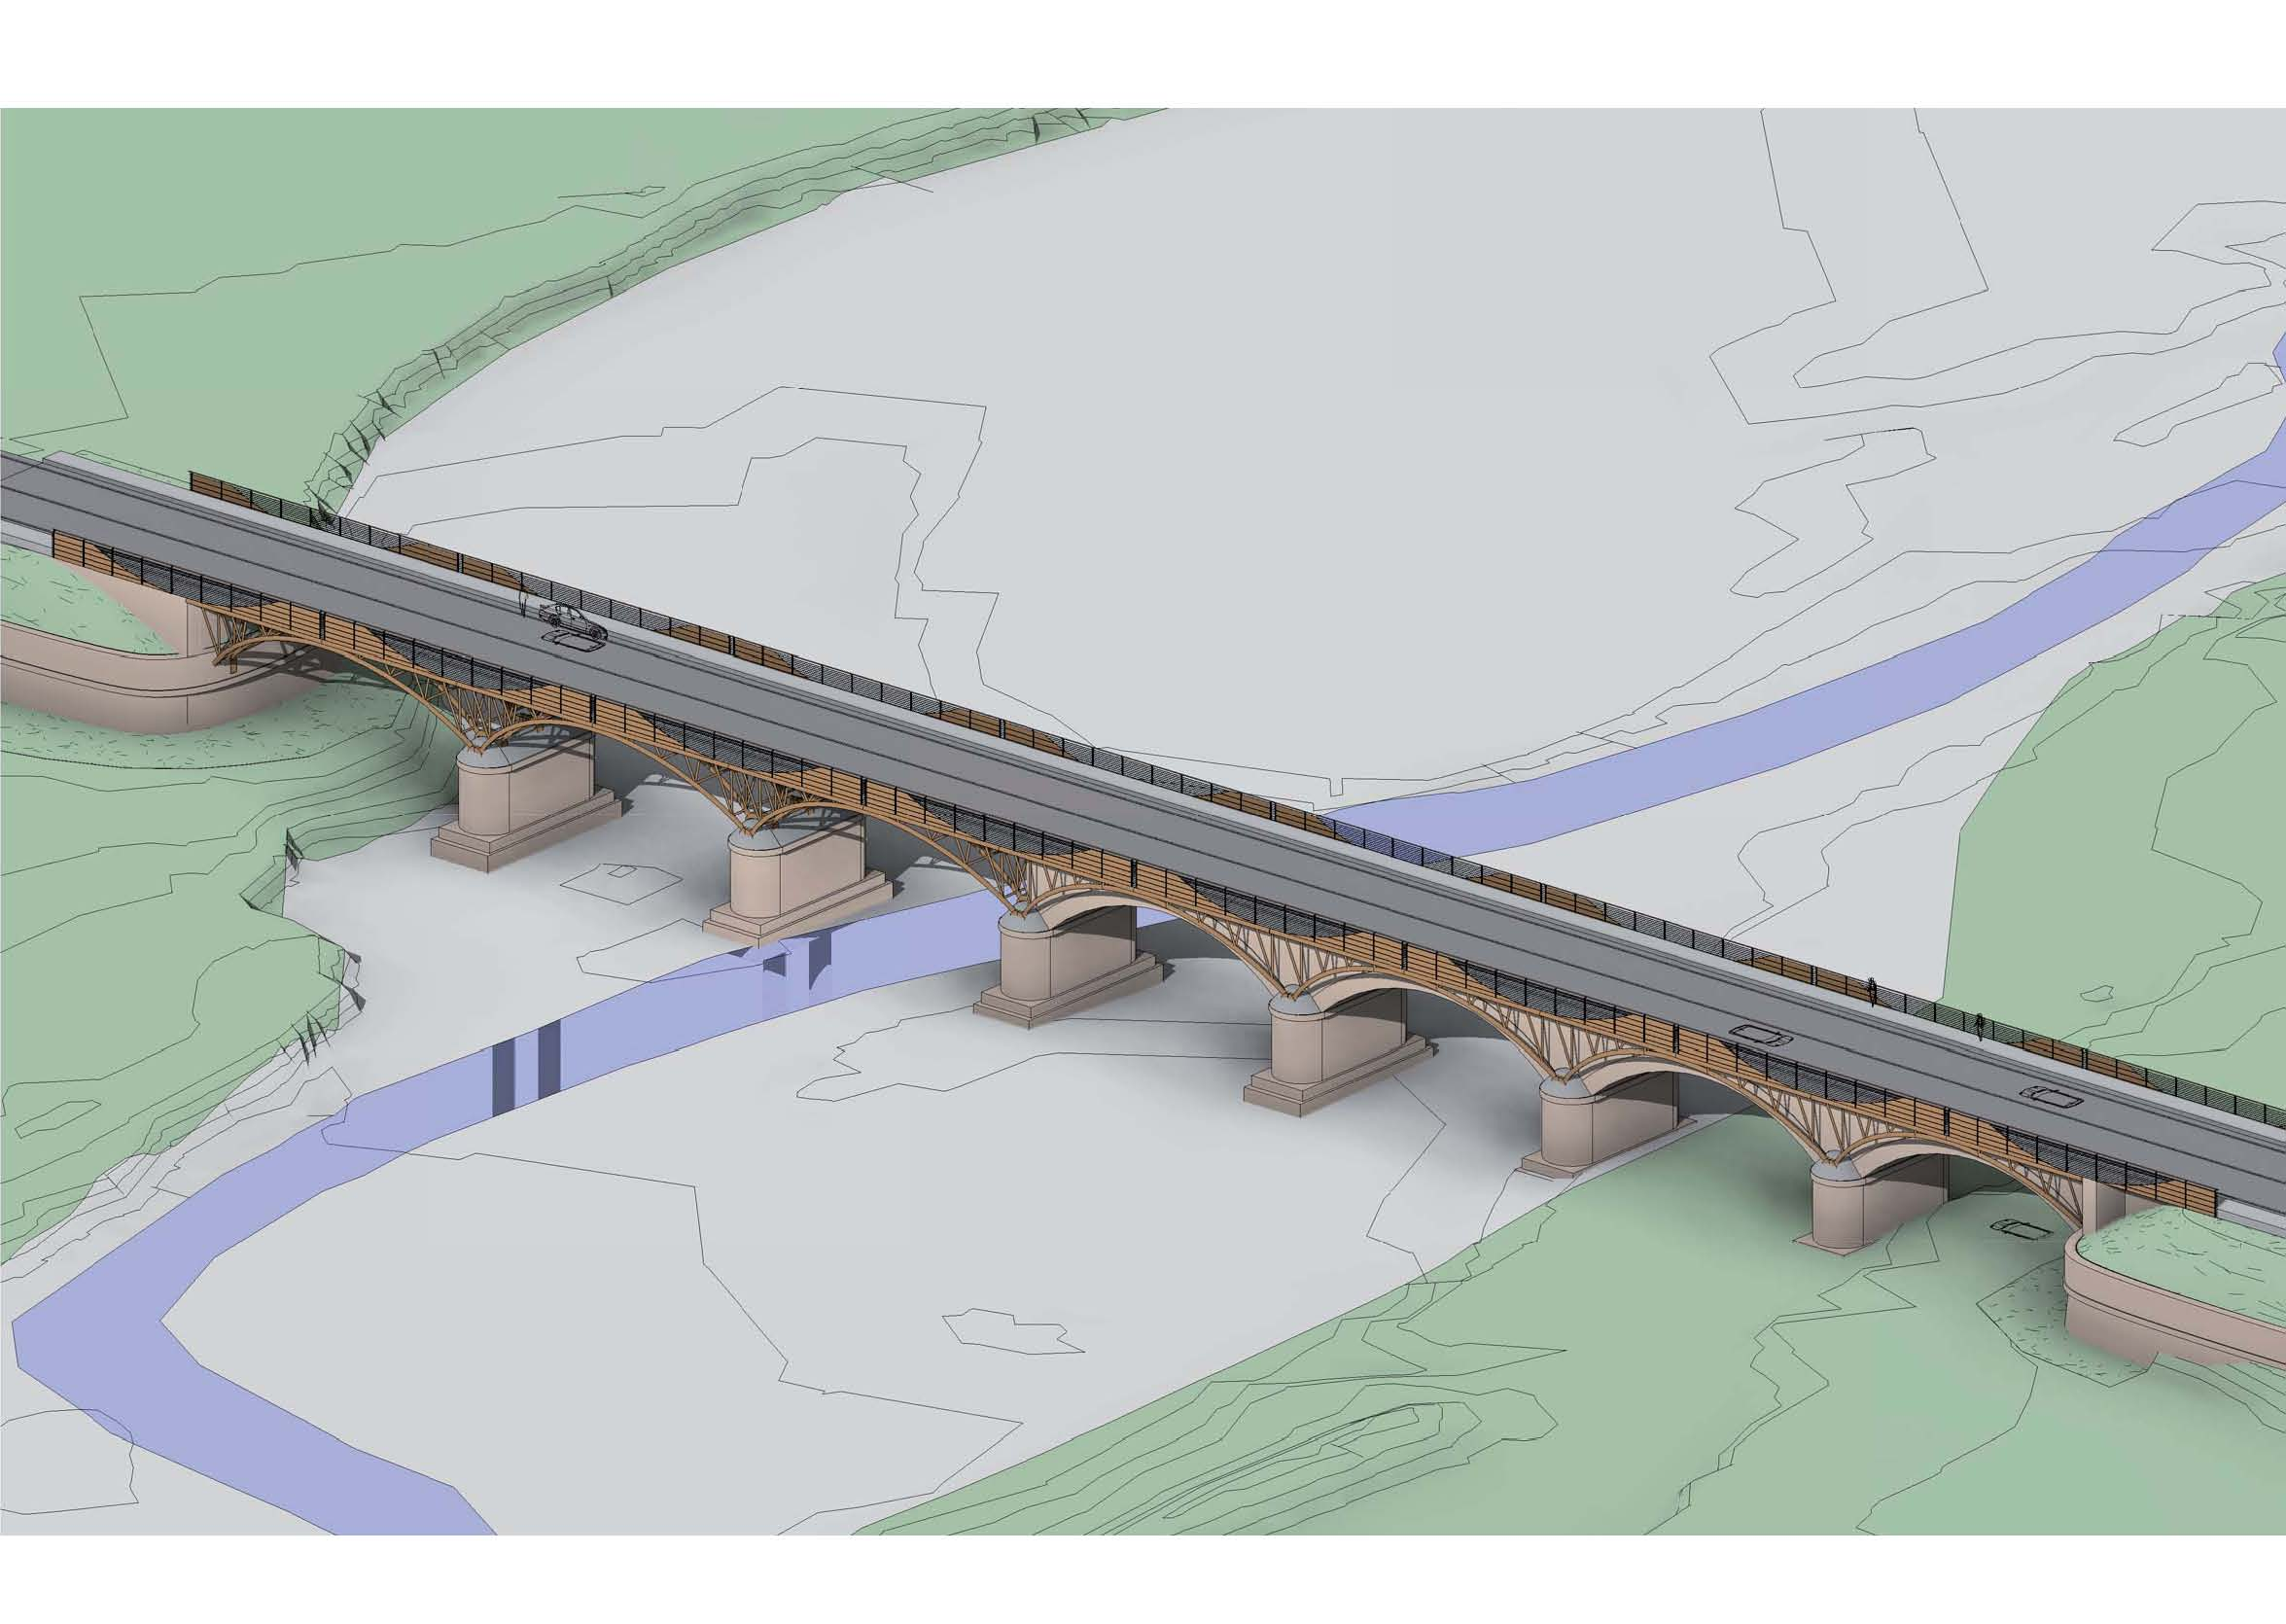 Ponte di Rubbianello in 3D